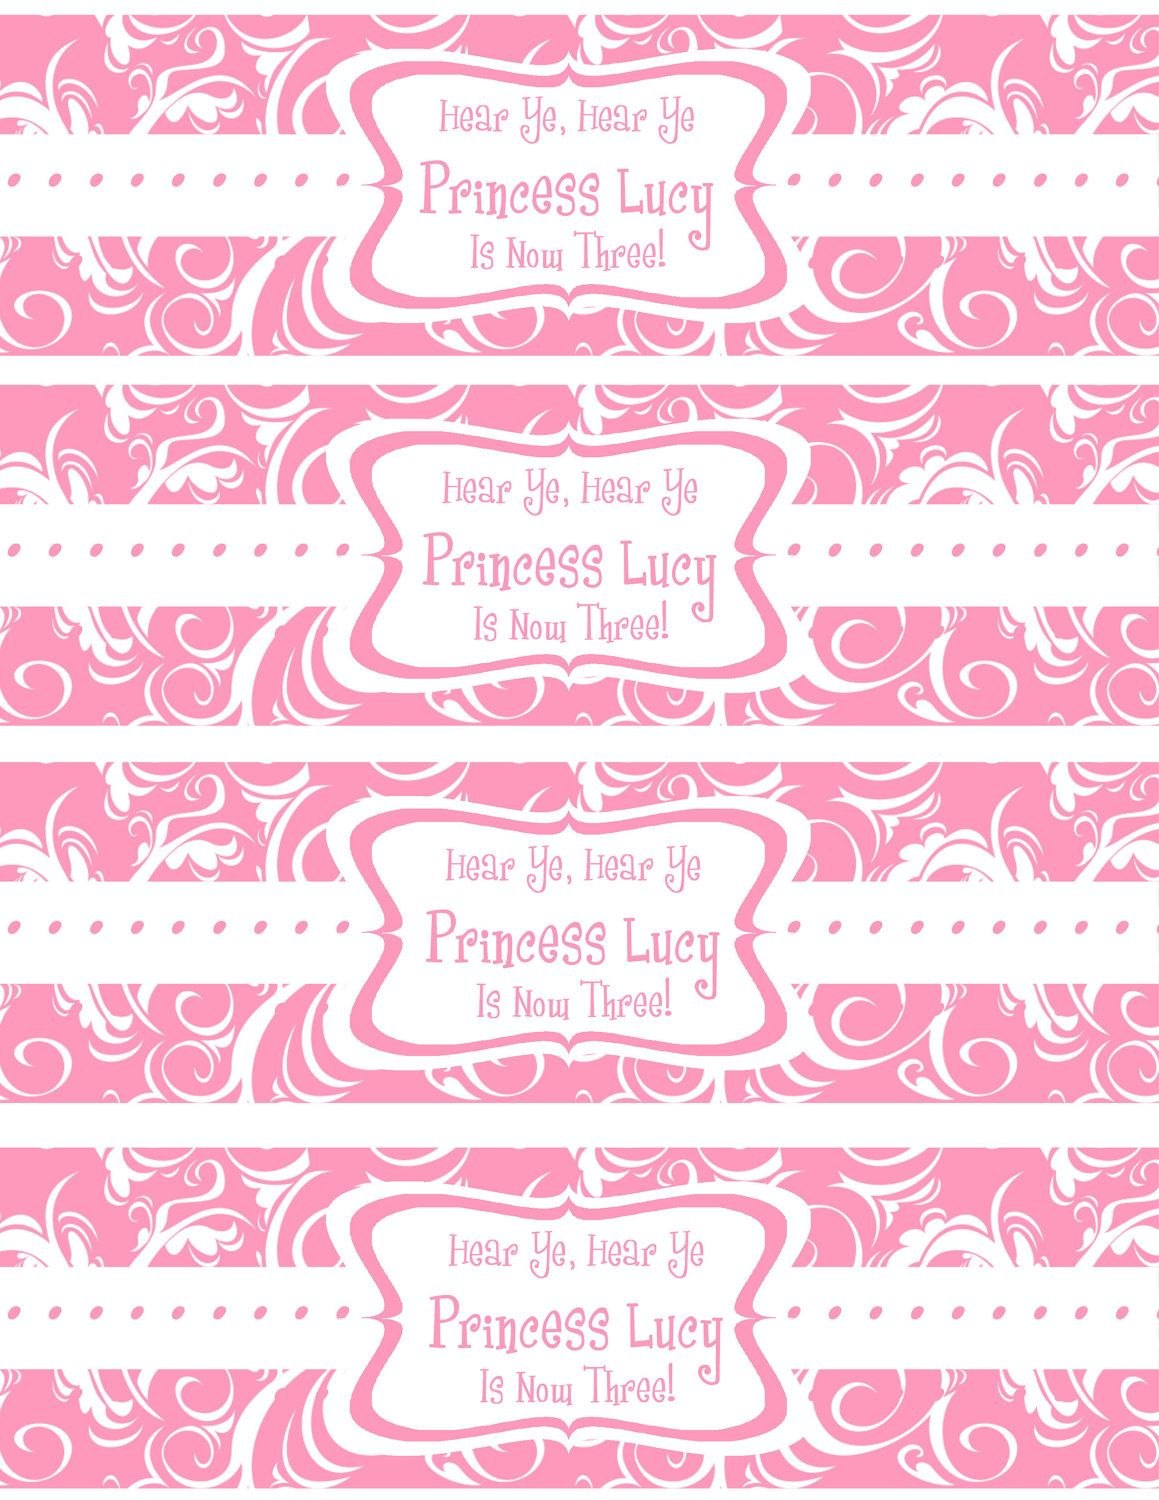 Free Printable Water Bottle Labels Template  Kreatief  Water With Free Printable Water Bottle Labels Template